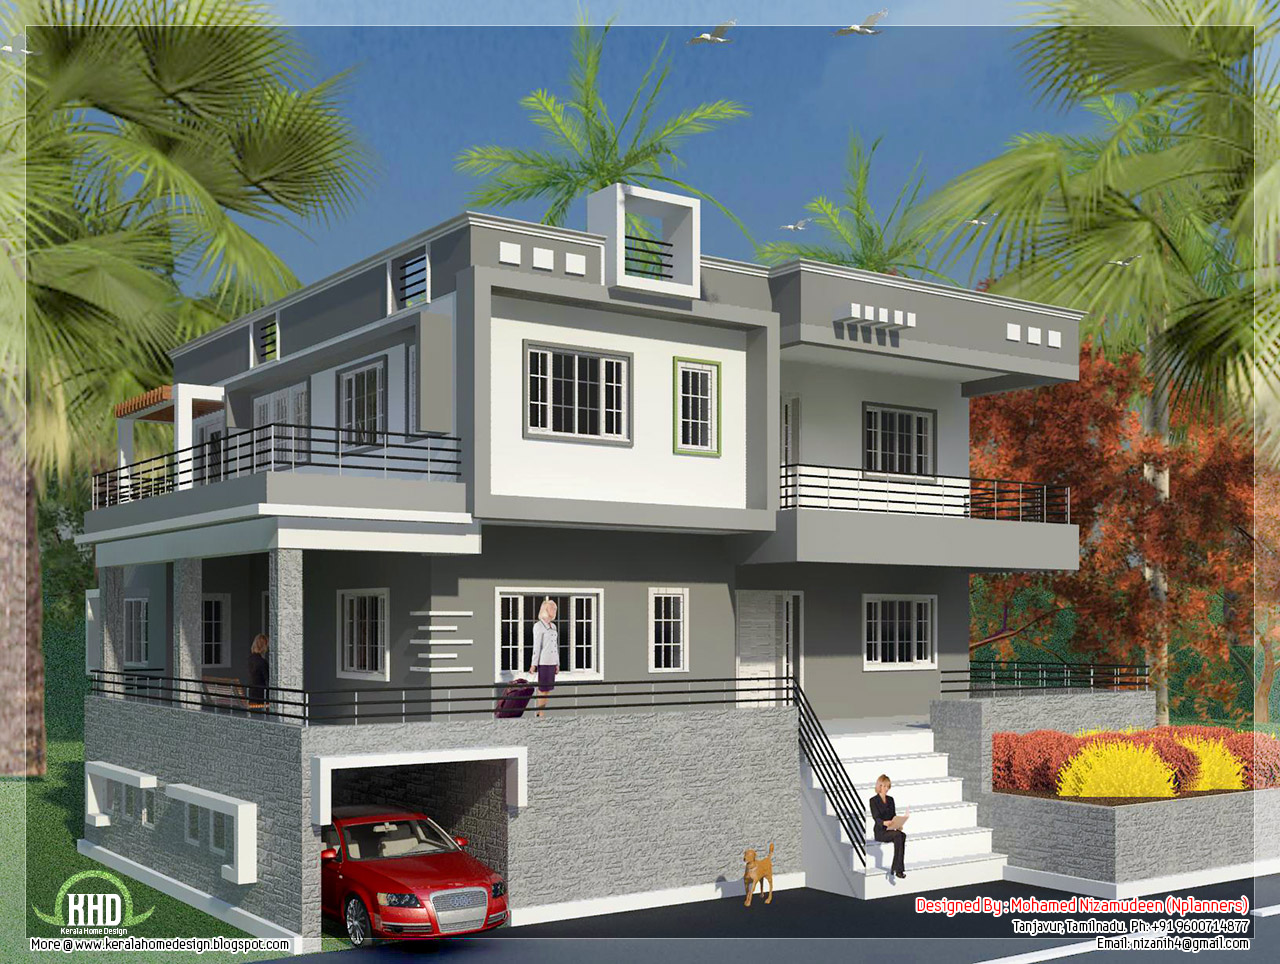 North indian style minimalist house exterior design for Home exterior design india residence houses